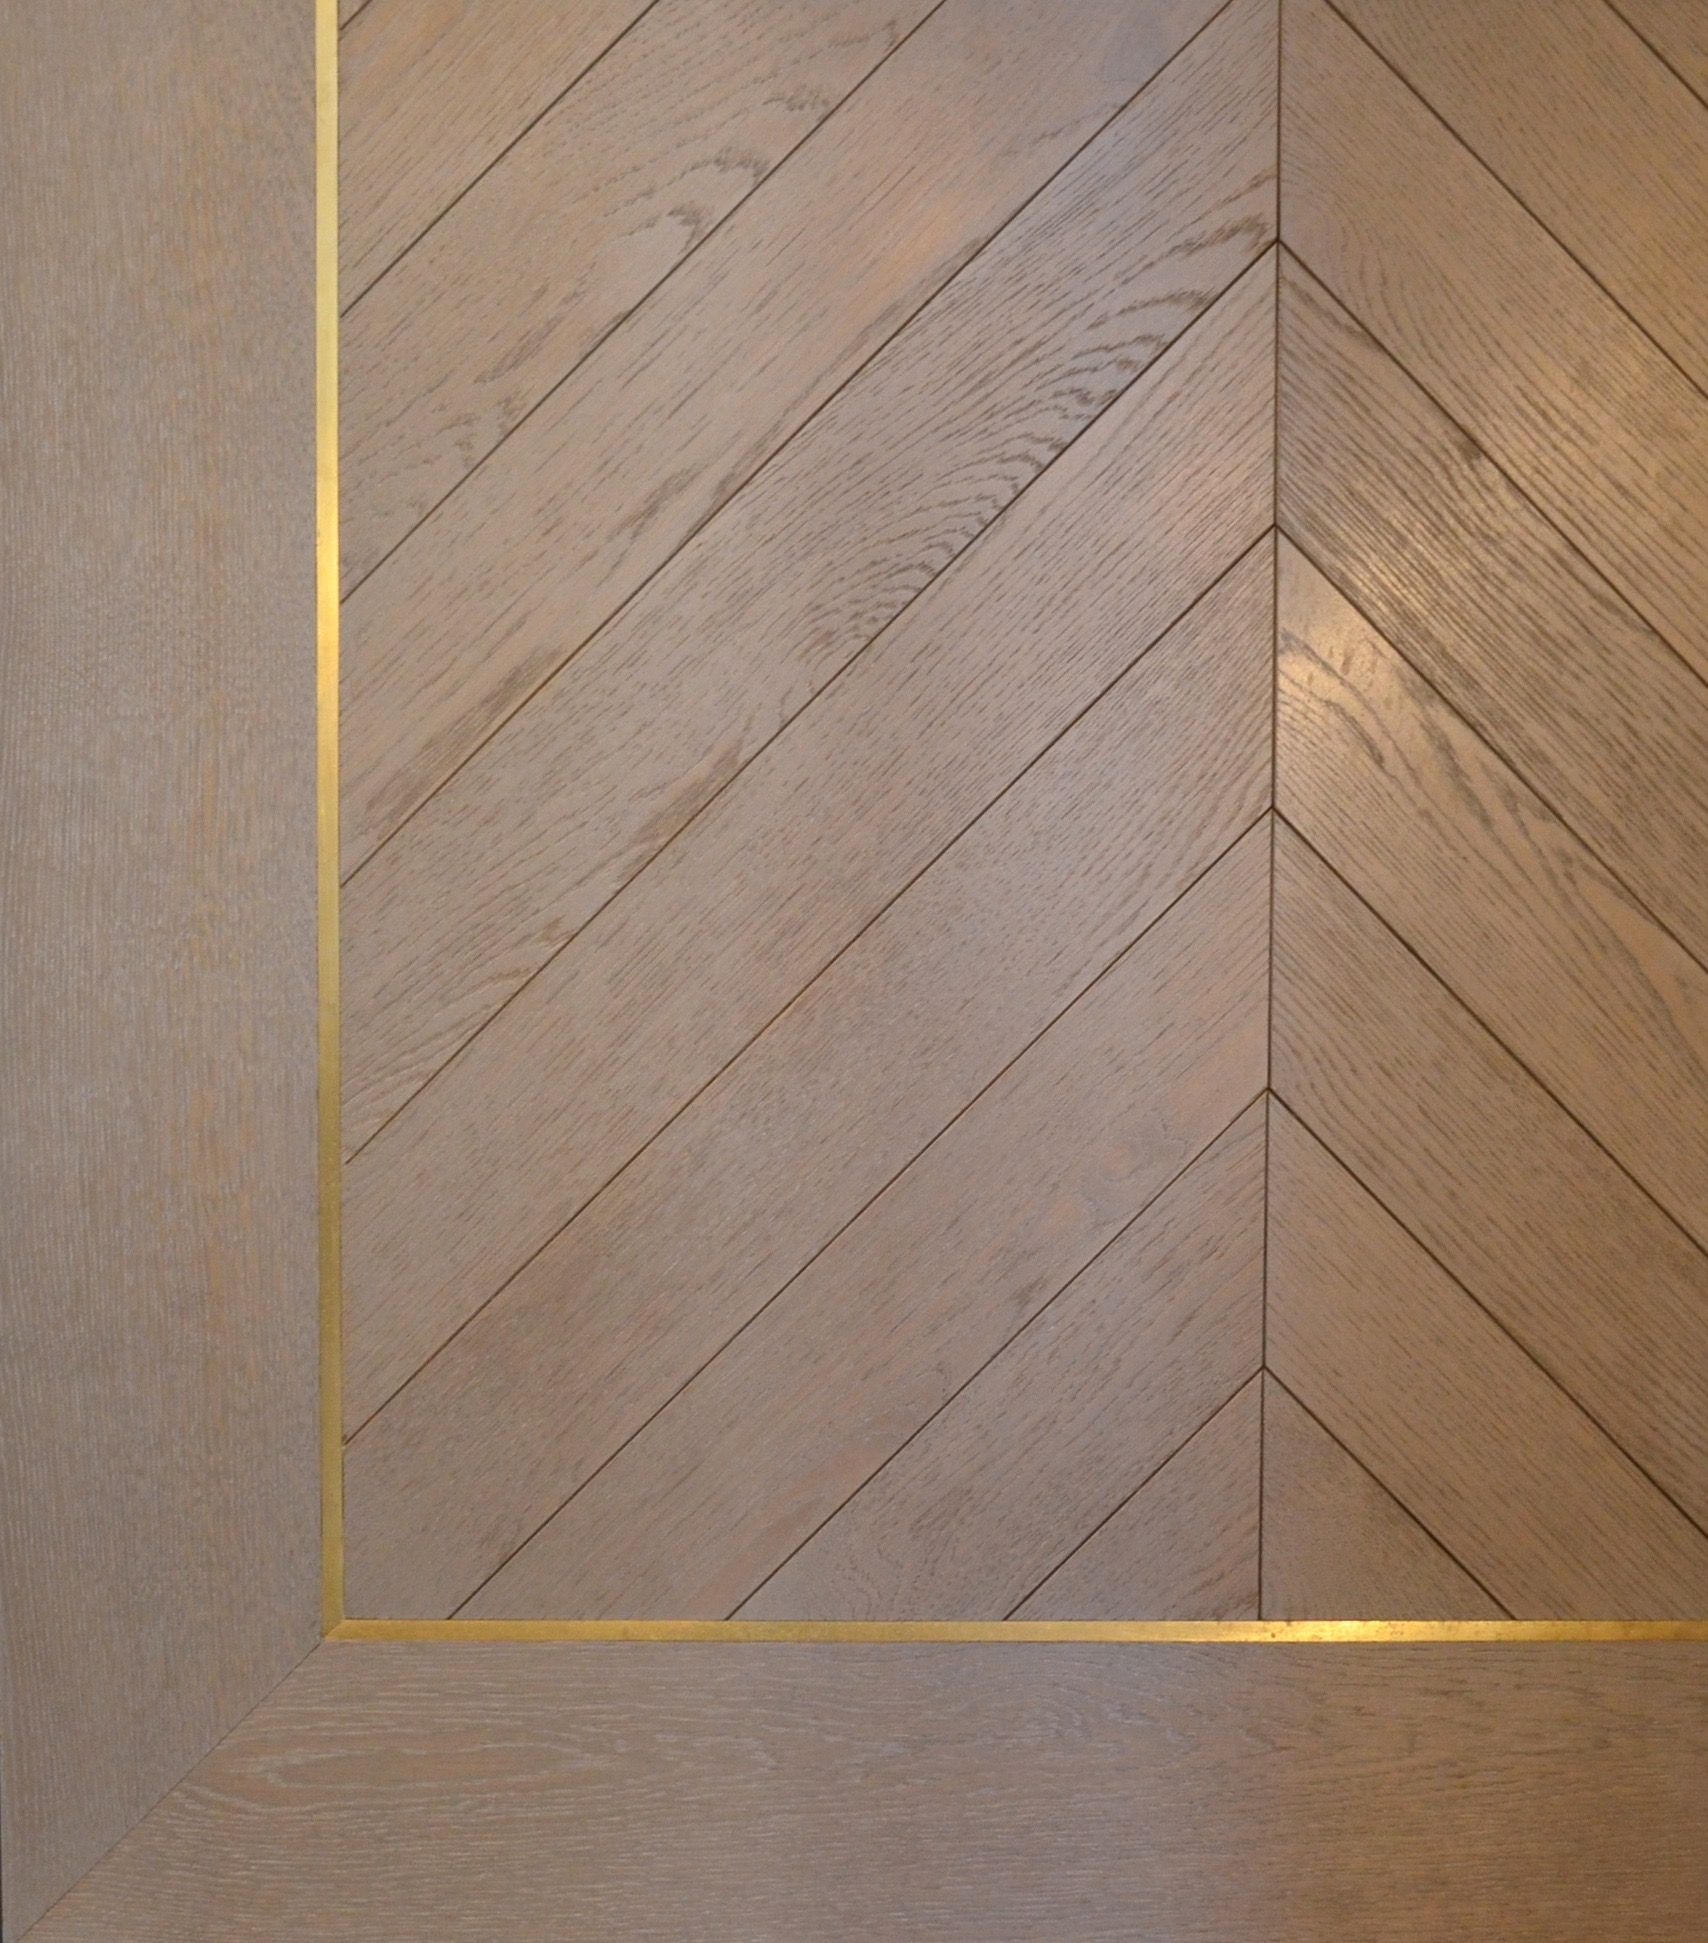 Parquet Chevron Stratifié Bespoke Chevron With Brass Inlay Border French Parquet